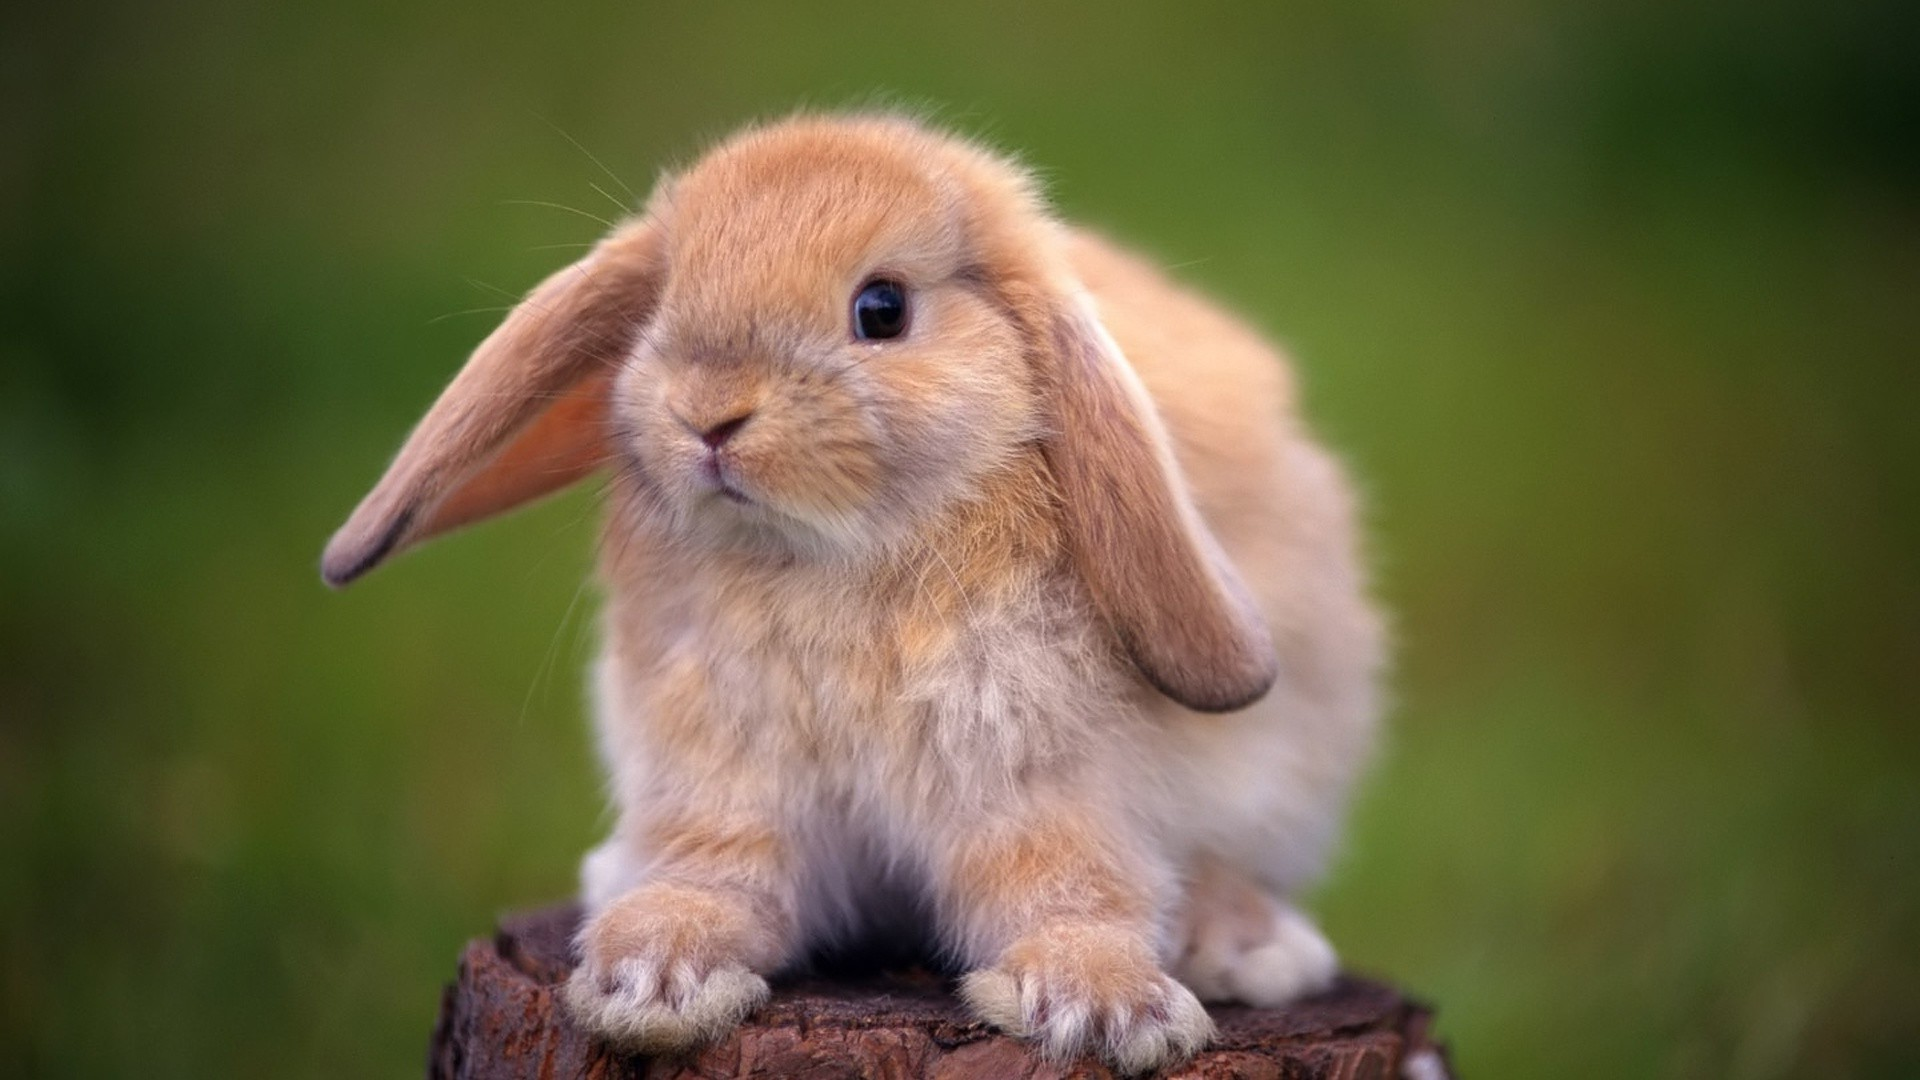 rabbit on a stump